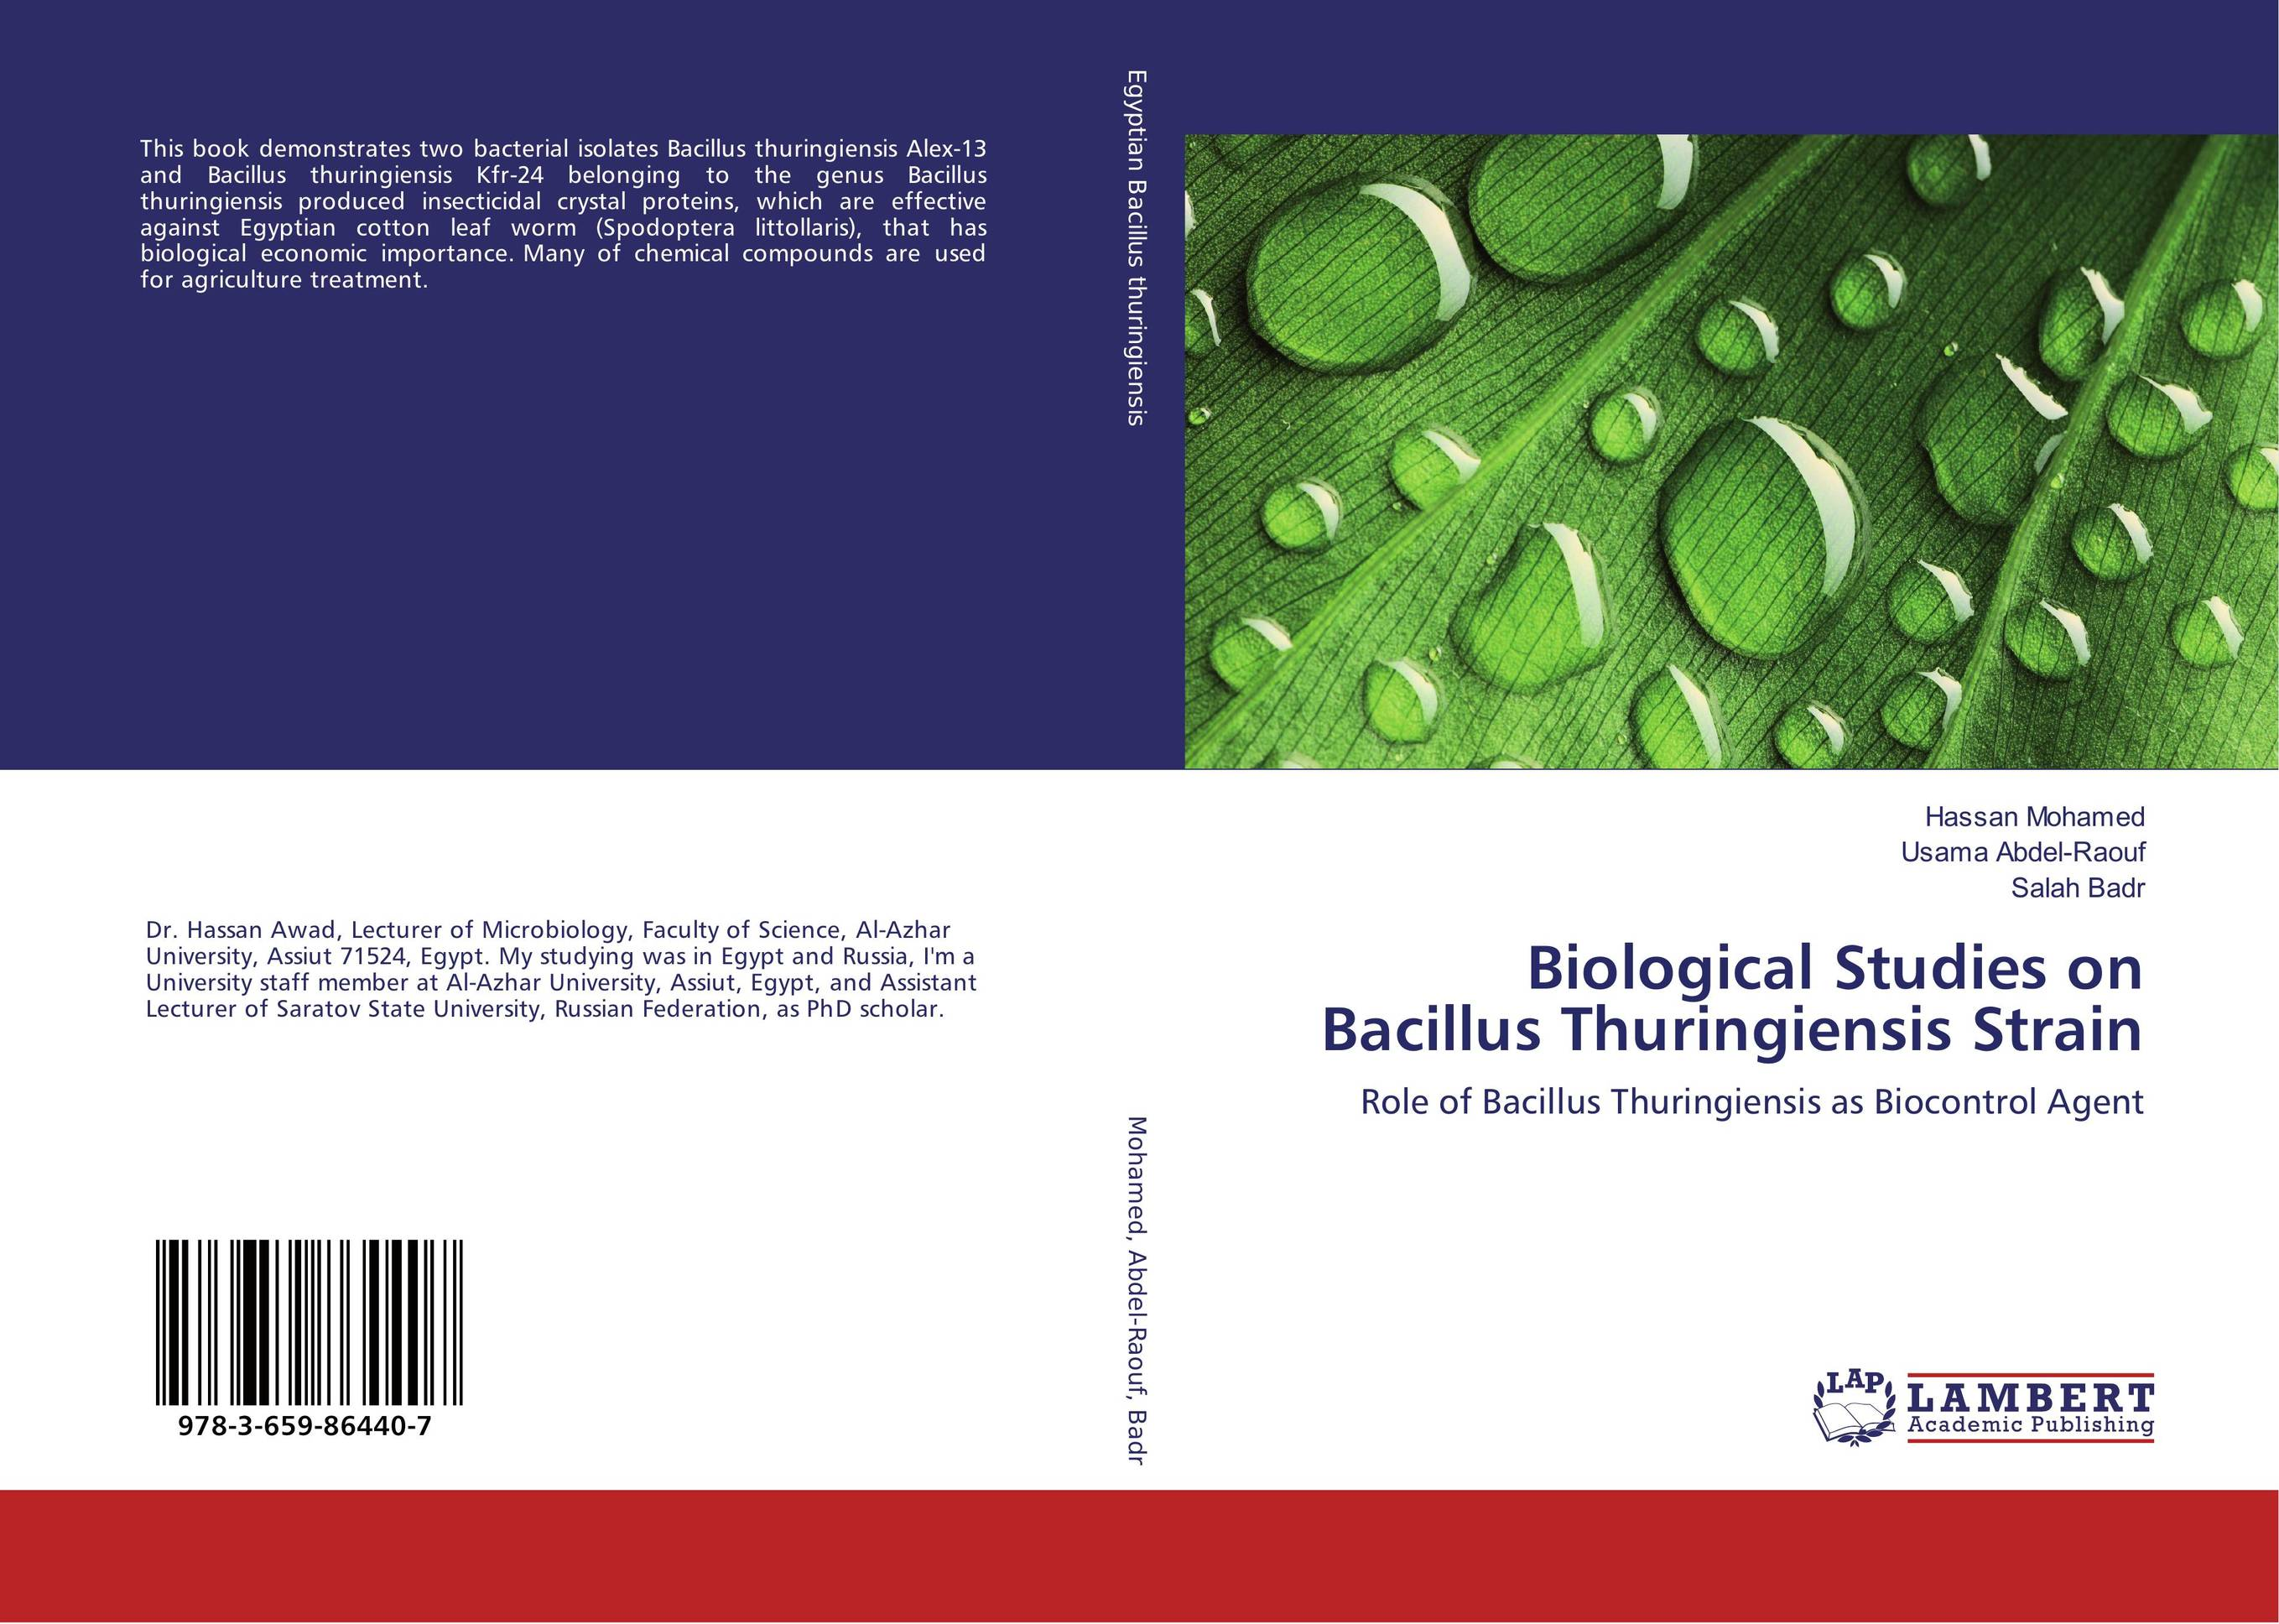 Biological Studies on Bacillus Thuringiensis Strain hyper production of cellulase by mutagenesis of bacillus strain